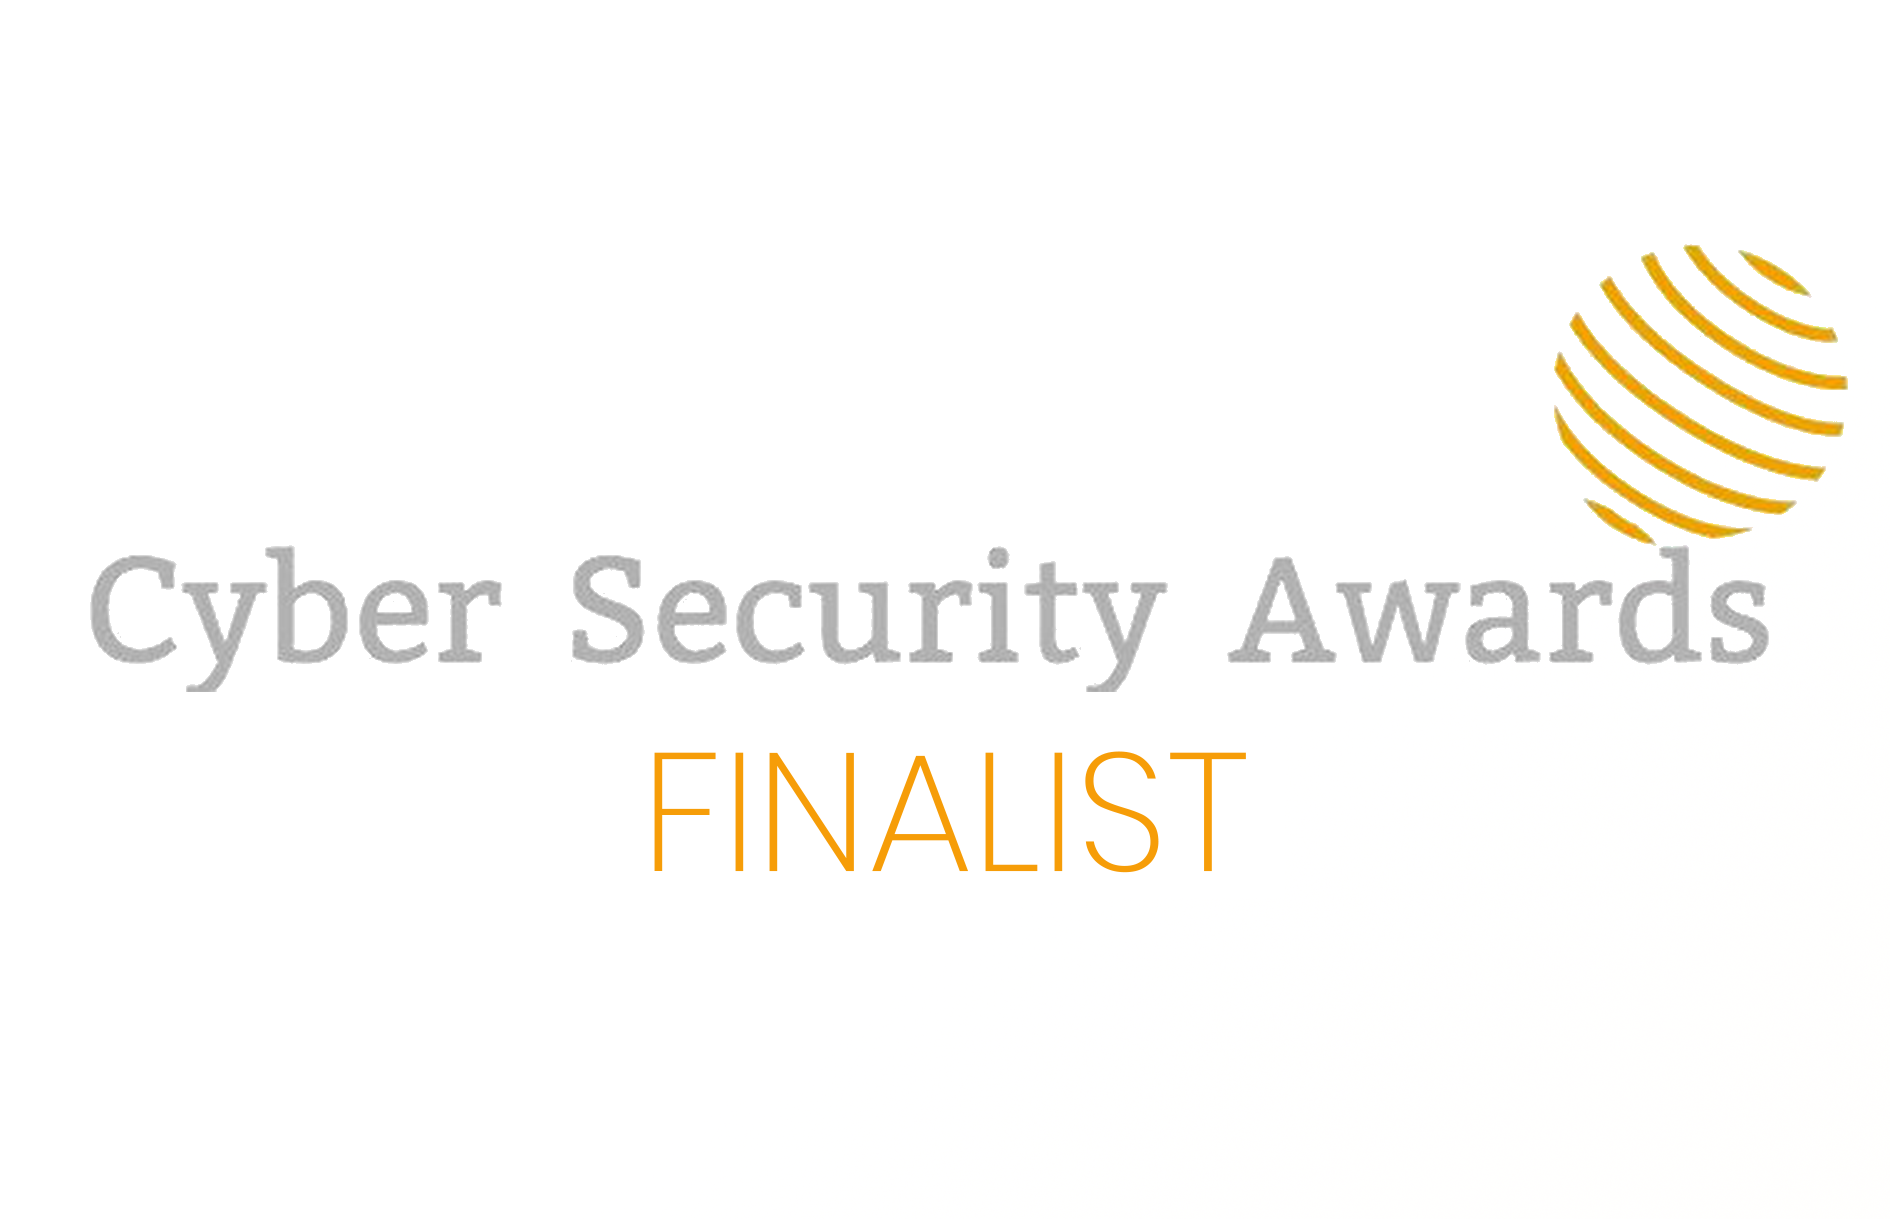 SysGroup Cyber Security Awards Finalists